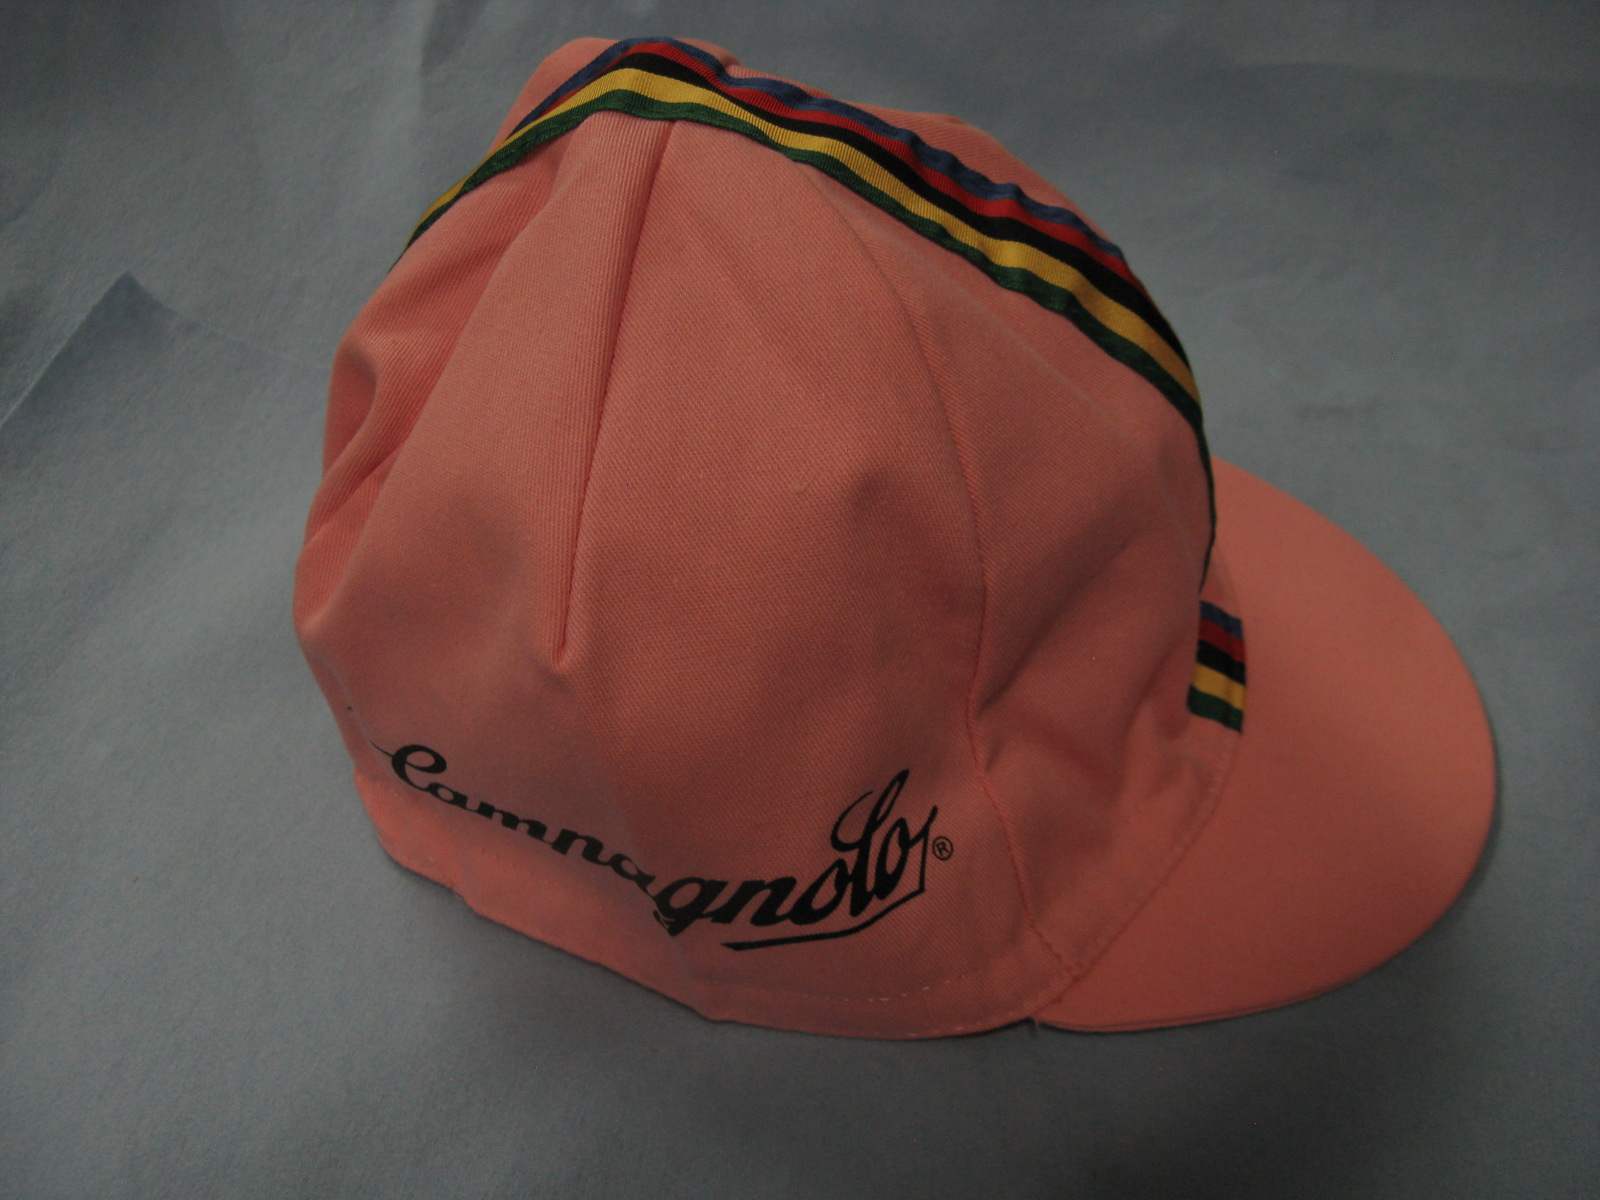 cagnolo cycling cap pink way cool